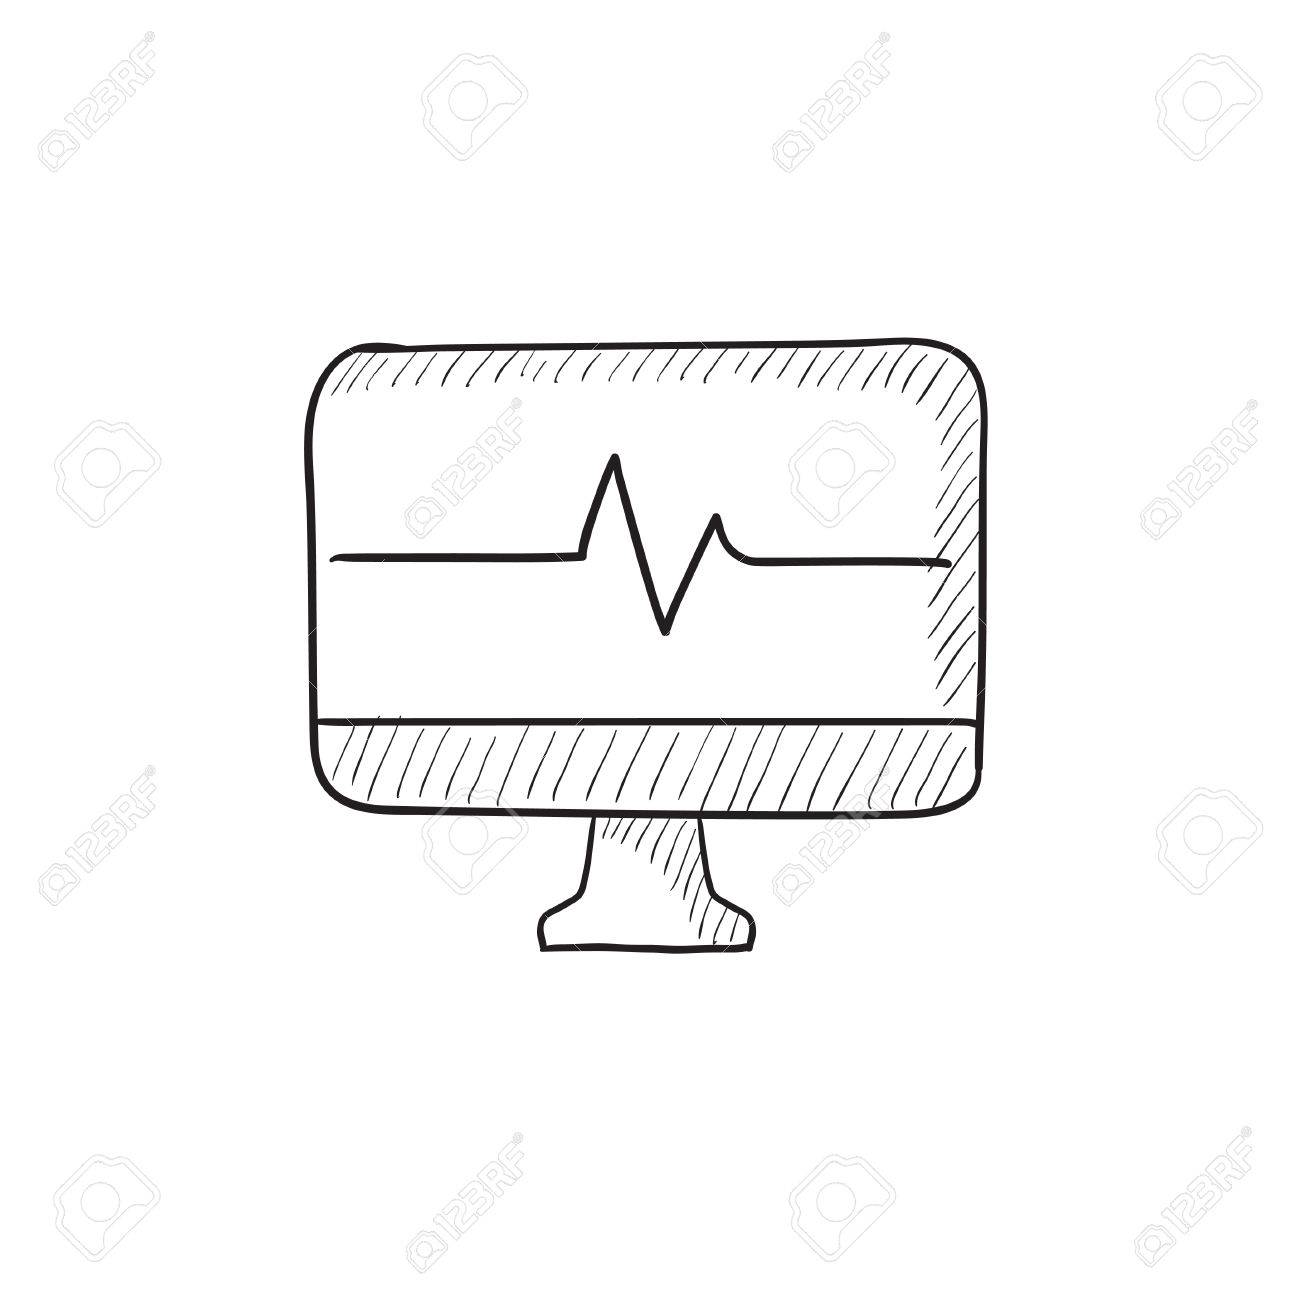 Heart beat monitor vector sketch icon isolated on background hand banco de imagens heart beat monitor vector sketch icon isolated on background hand drawn heart beat monitor icon heart beat monitor sketch icon for ccuart Images